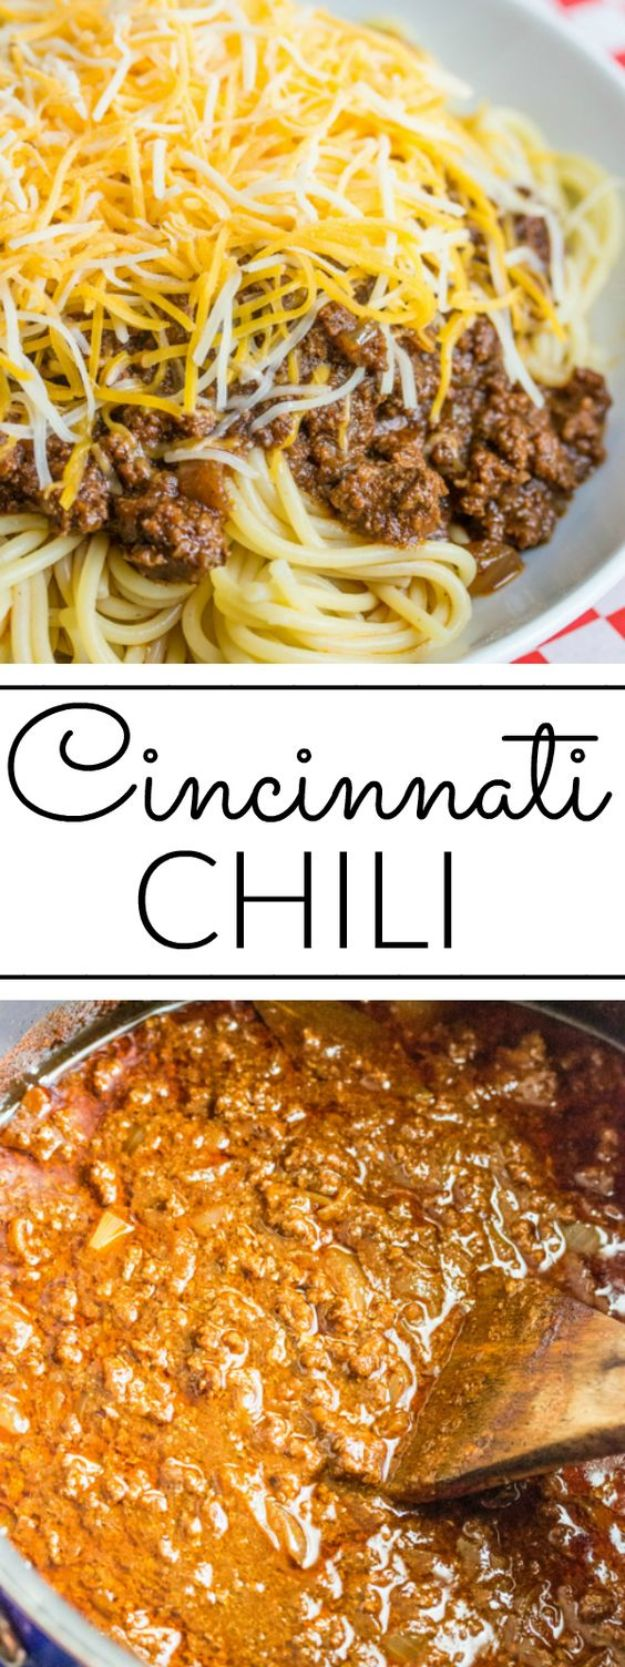 Best Recipes With Ground Beef - Cincinnati Chili - Easy Dinners and Ground Beef Recipe Ideas - Quick Lunch Salads, Casseroles, Tacos, One Skillet Meals - Healthy Crockpot Foods With Hamburger Meat - Mexican Casserole, Instant Pot Carne Molida, Low Carb and Keto Diet - Rice, Pasta, Potatoes and Crescent Rolls #groundbeef #beefrecipes #beedrecipe #dinnerideas #dinnerrecipes http://diyjoy.com/best-recipes-ground-beef